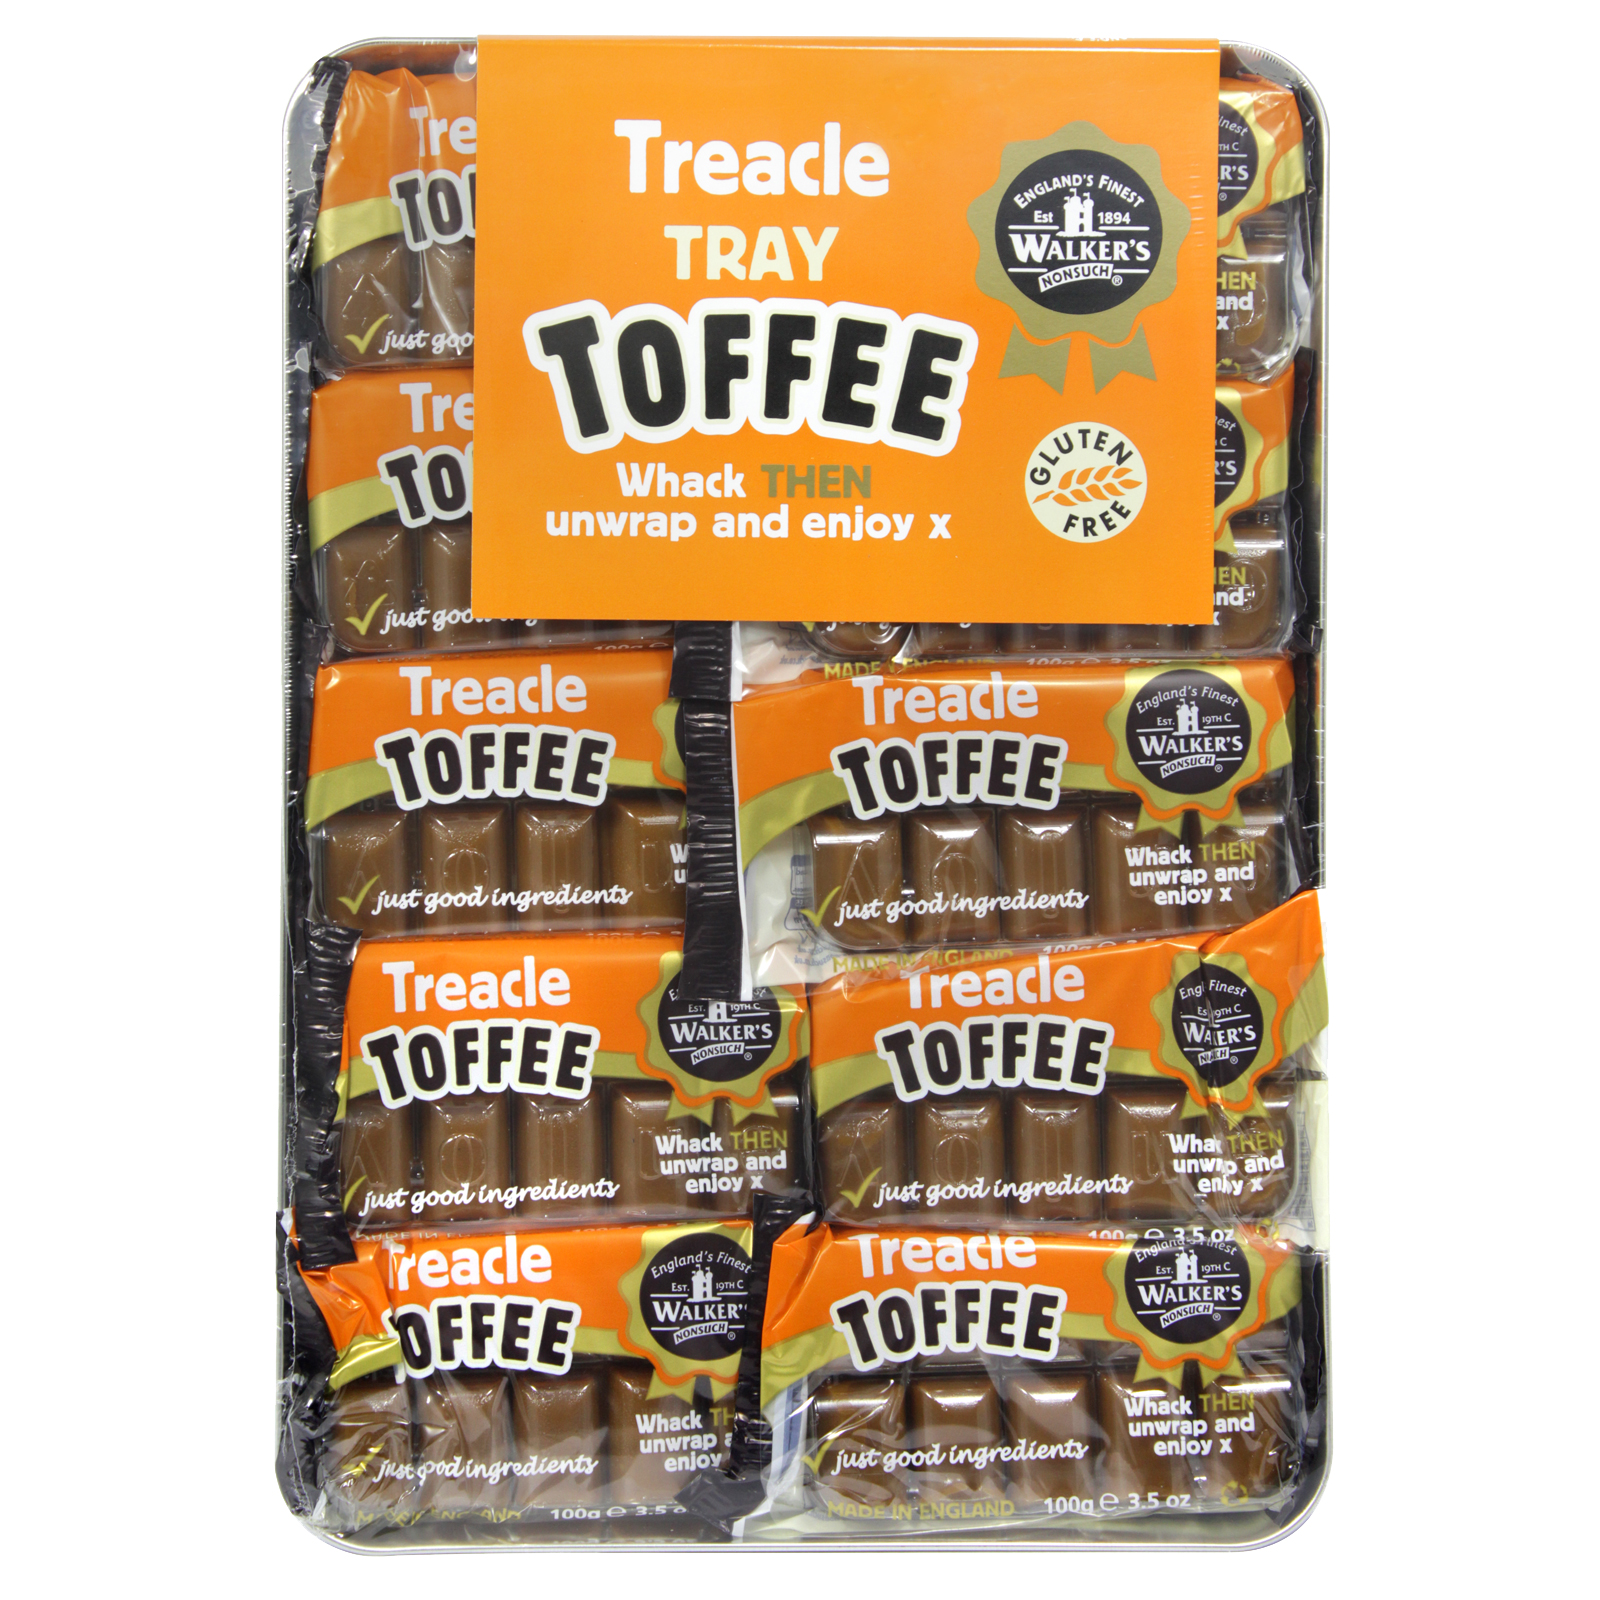 WALKERS TRAY TOFFEE TREACLE X10